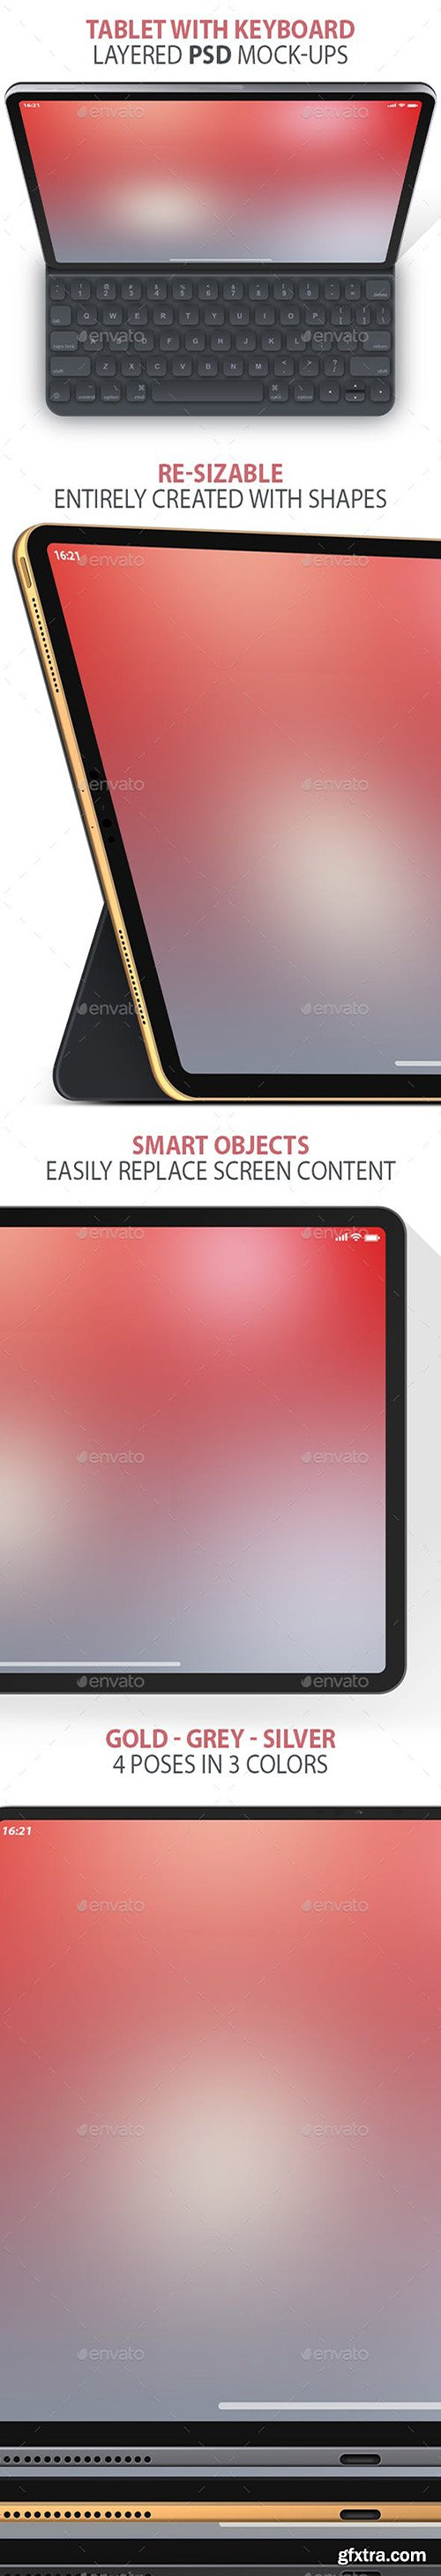 Clean Tablet Layered PSD Mock-ups 23086943